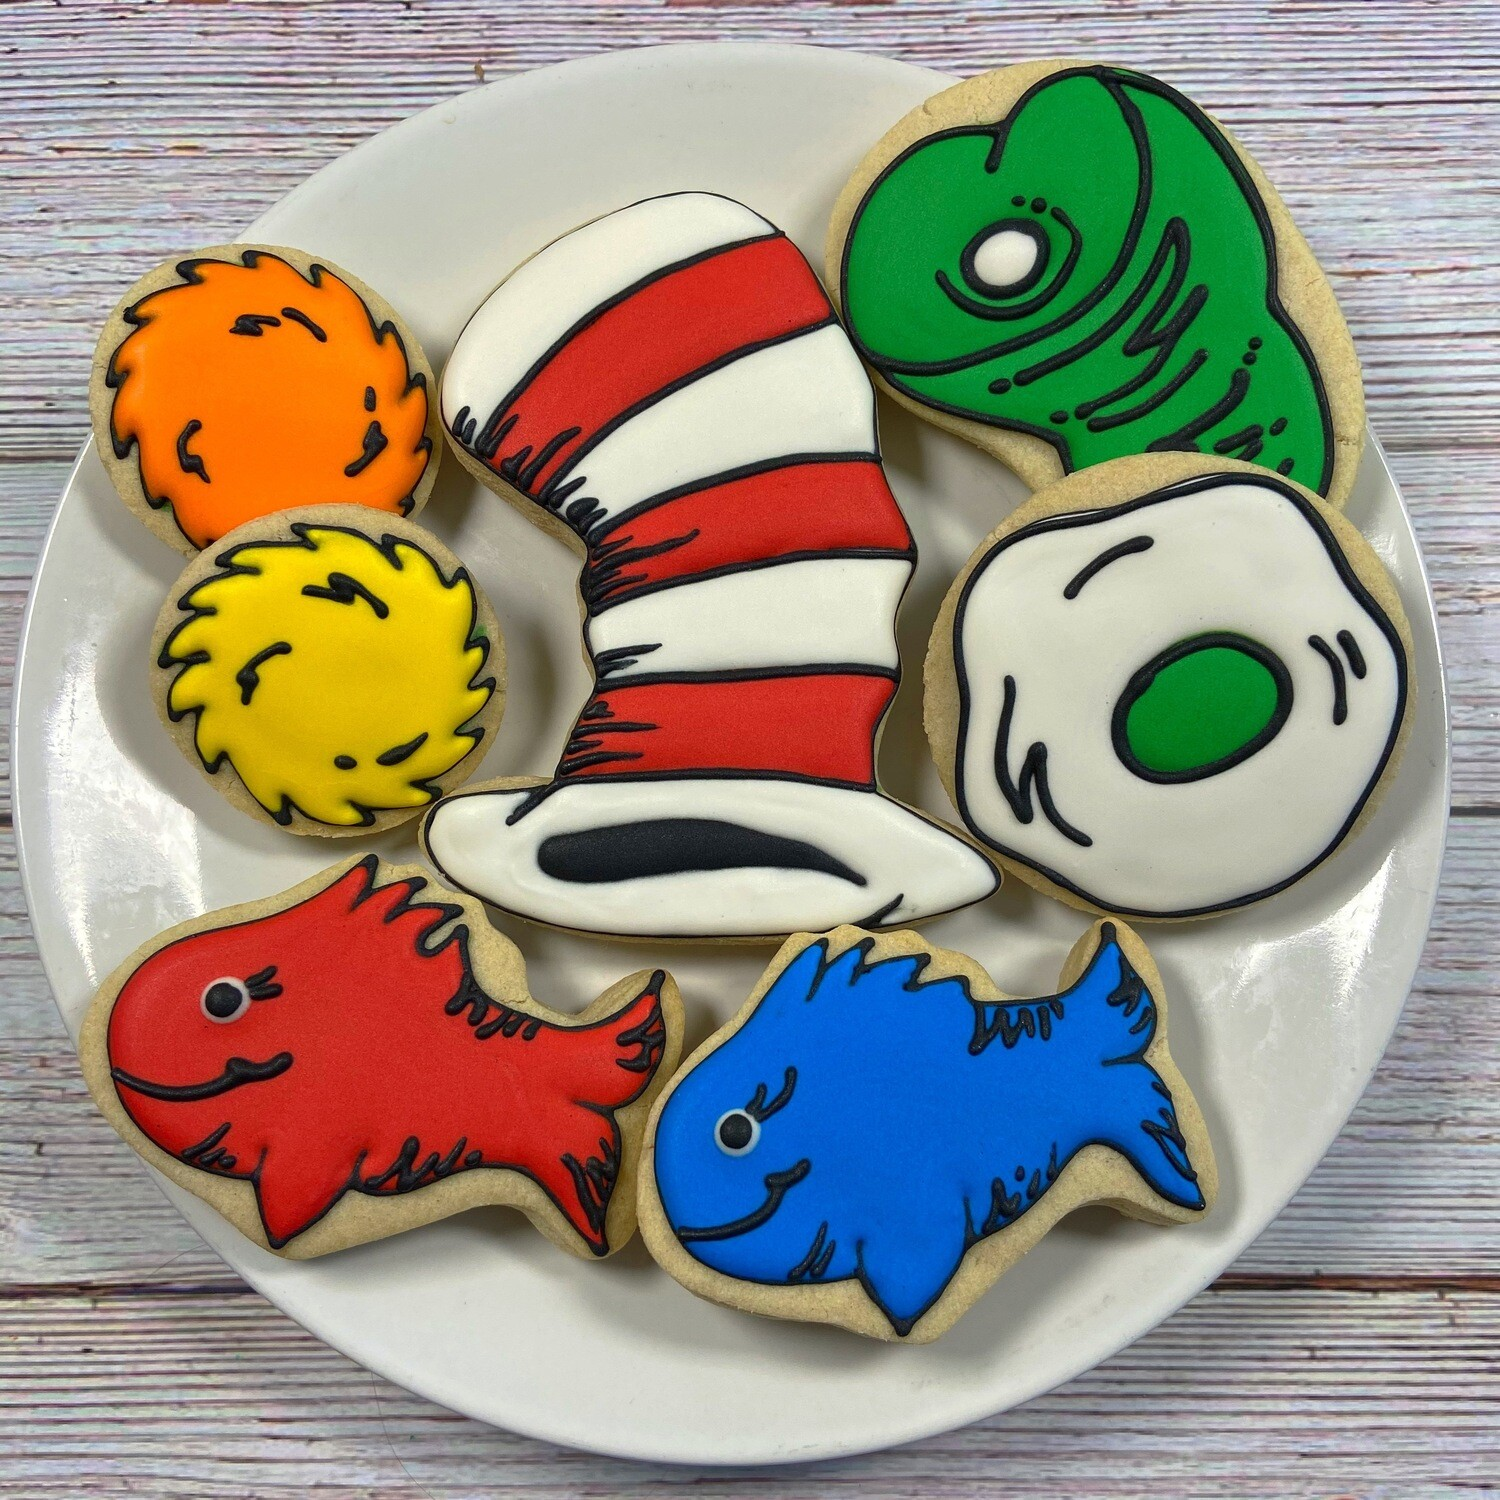 'DR. SEUSS Decorating Workshop - SUNDAY, AUGUST 8th at 4 p.m. (THE COOKIE DECORATING STUDIO)